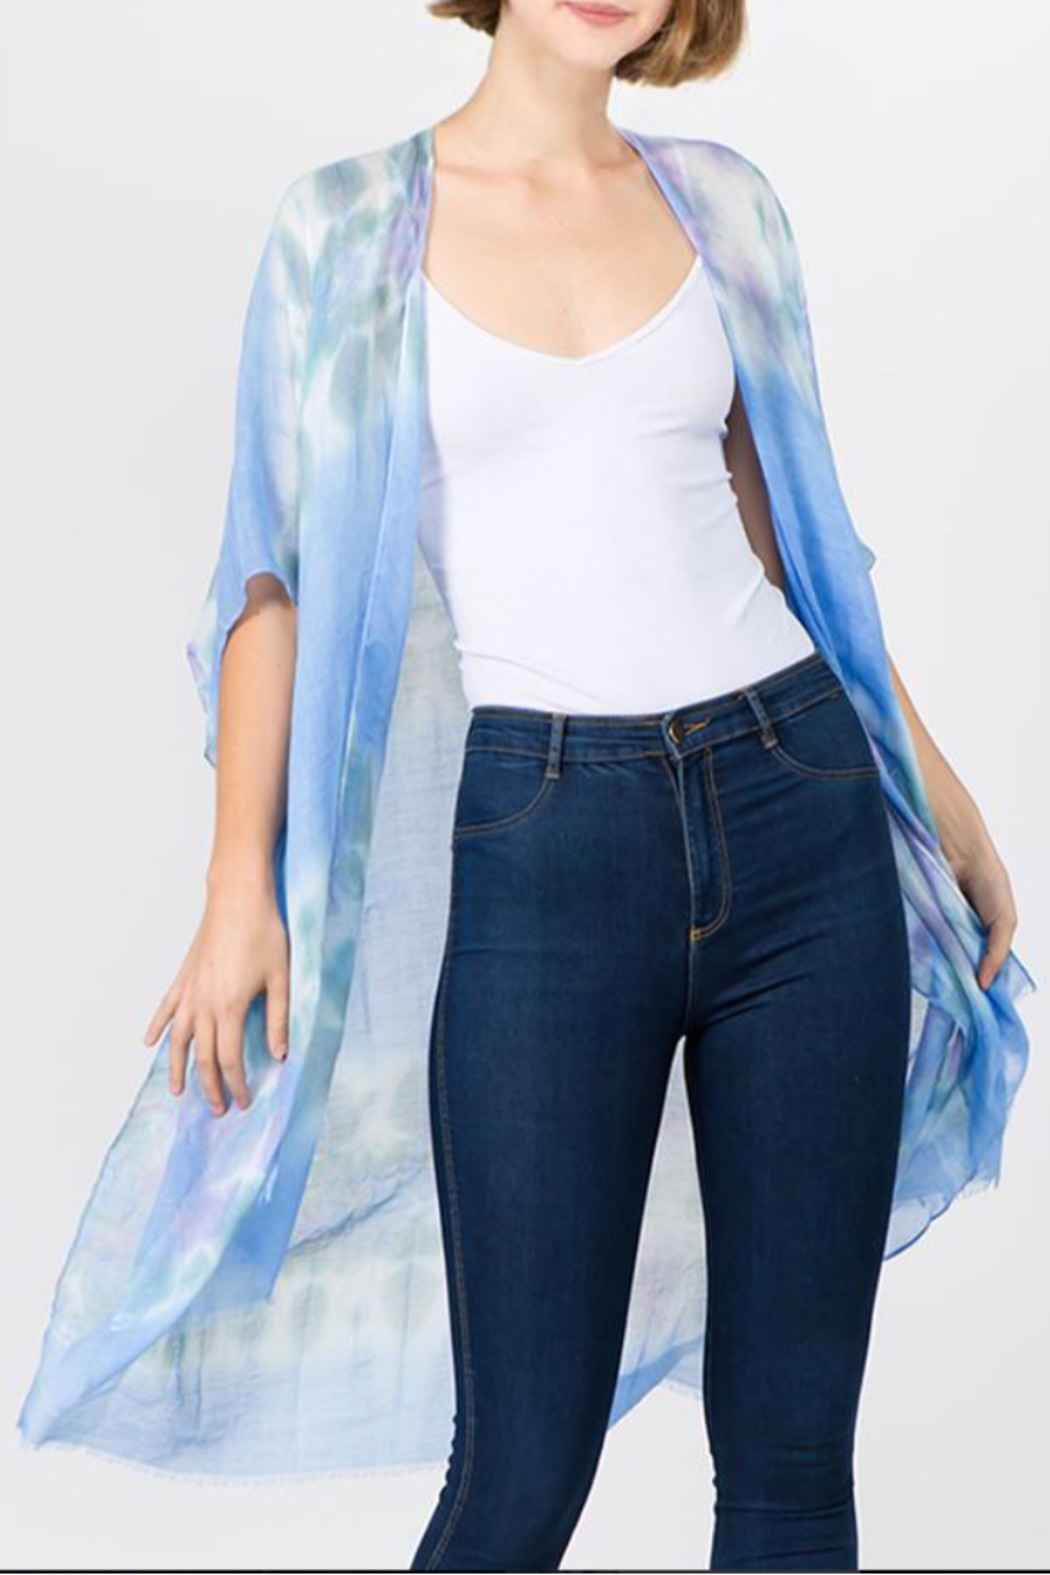 L.I.B. New York Tie-Dye Kimono/Cover Up - Main Image